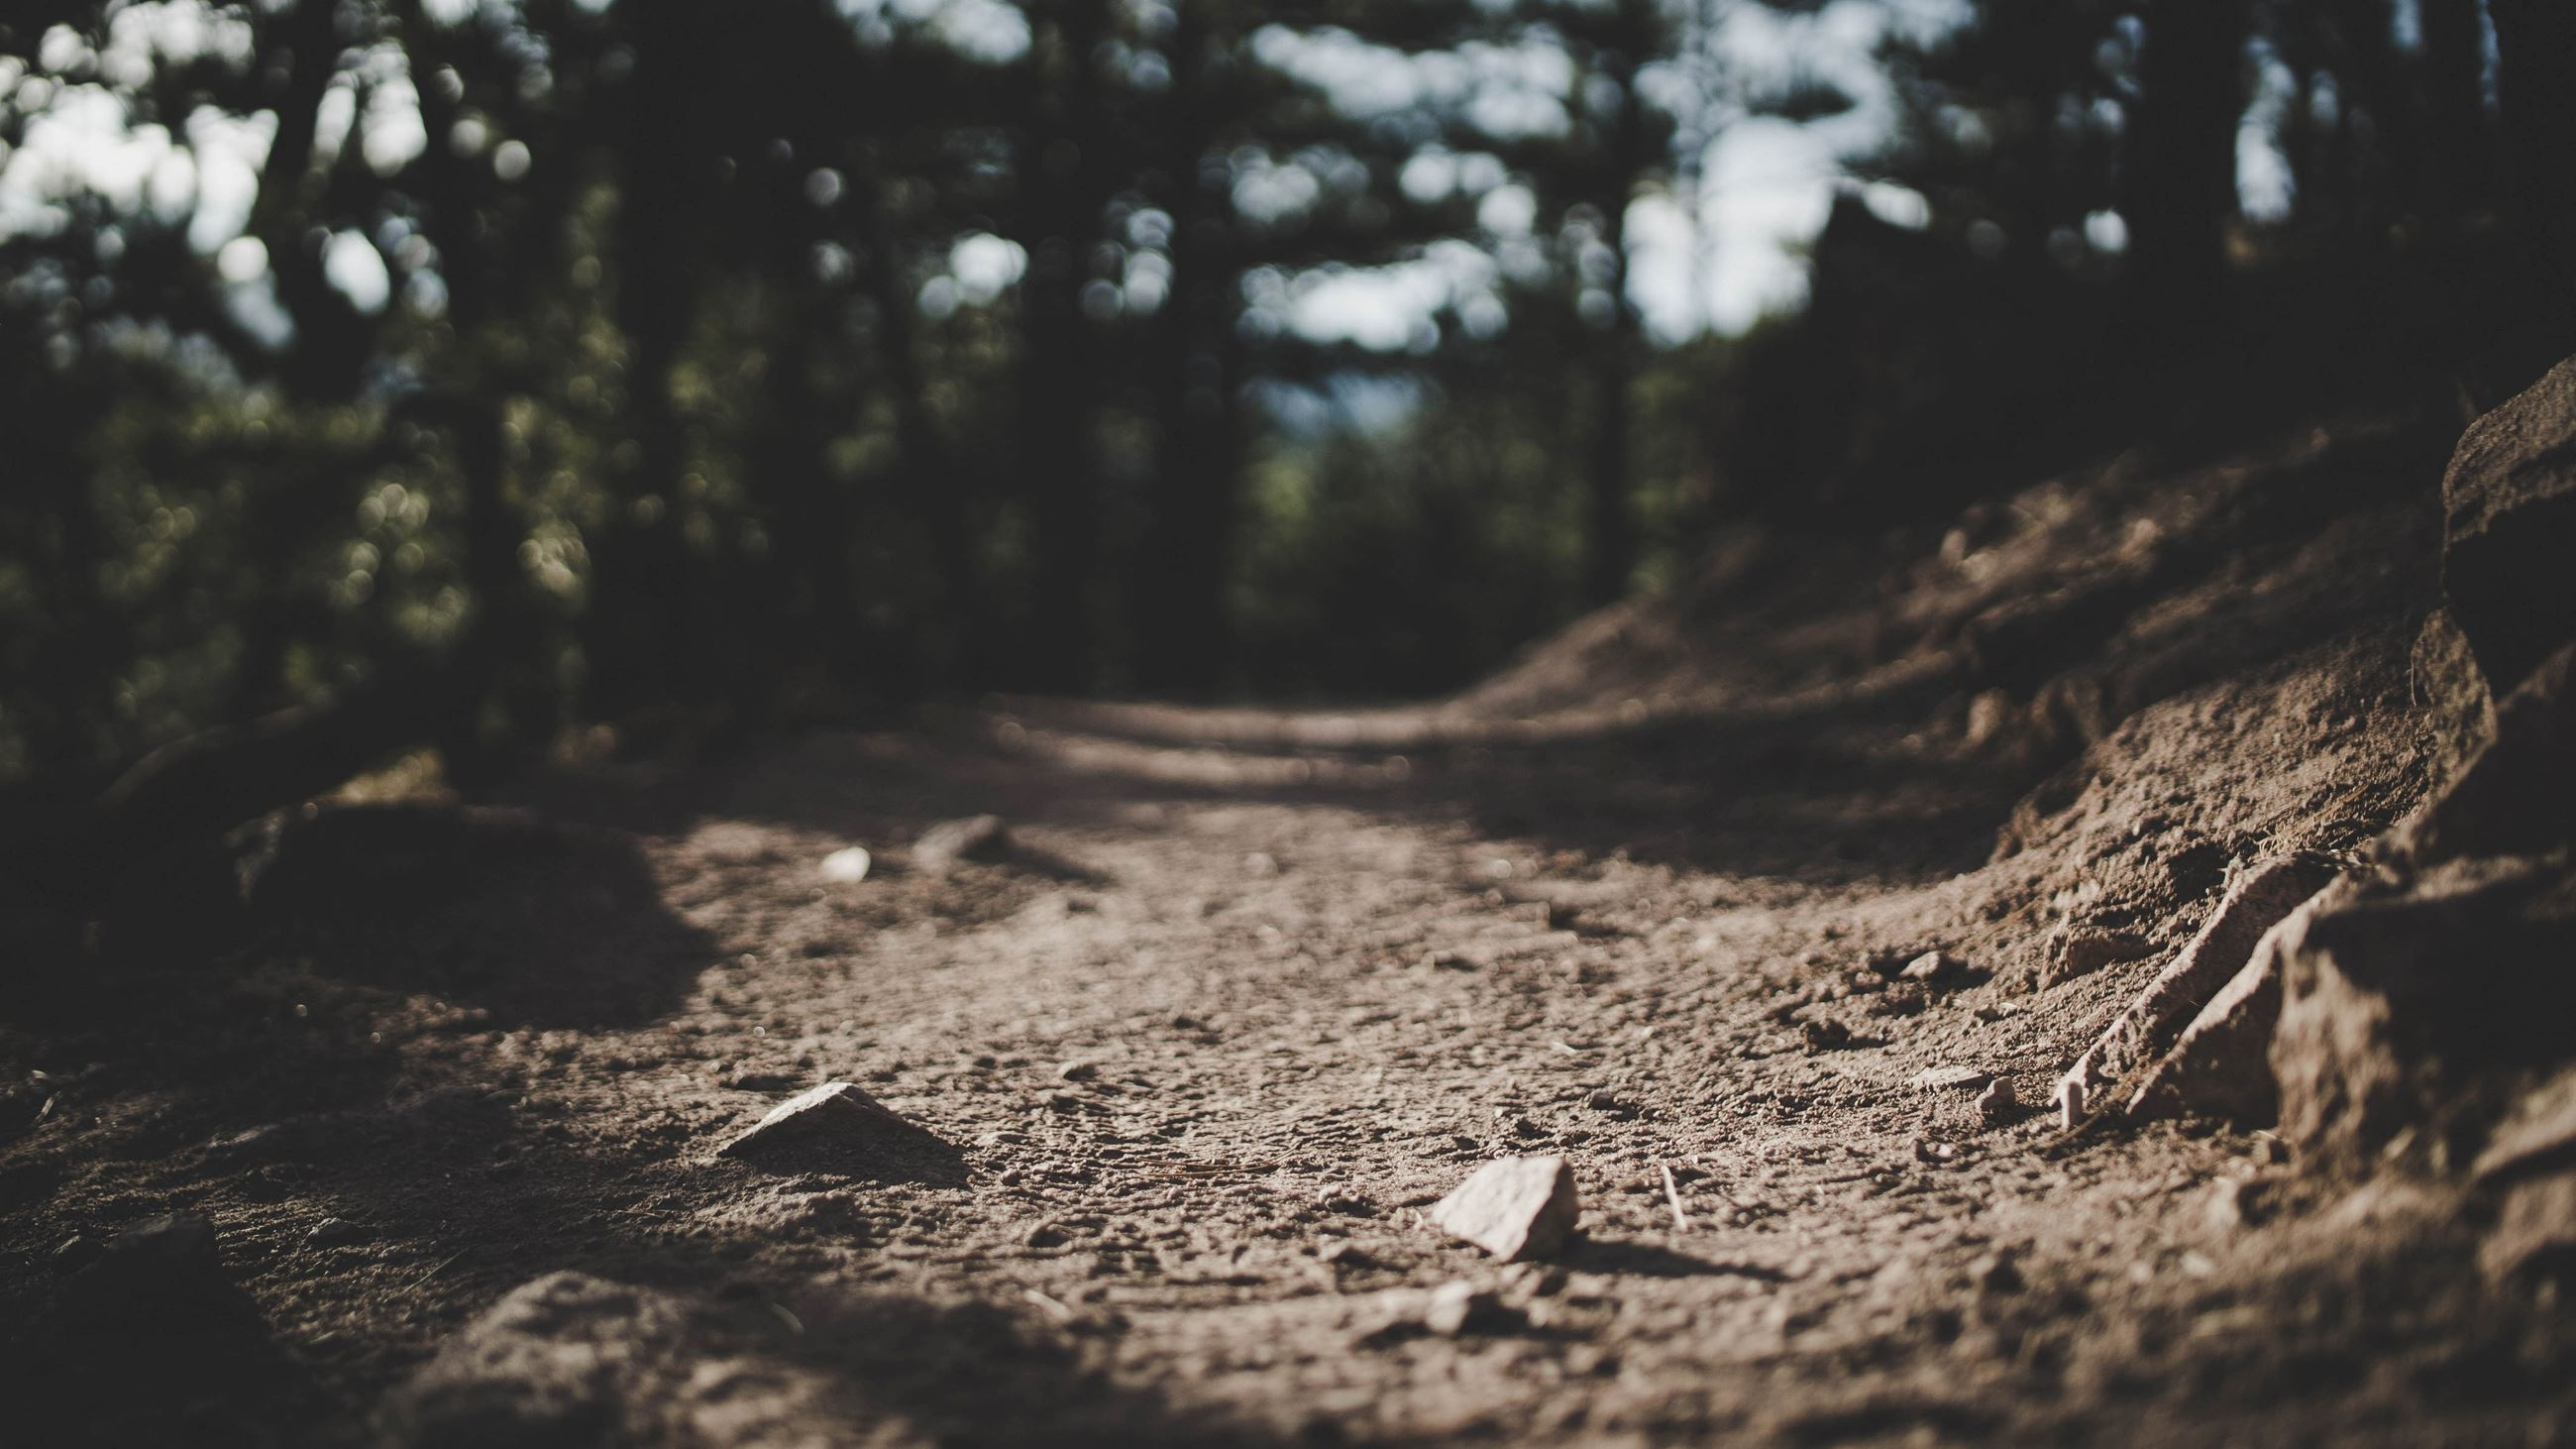 Photo by Trevor Brown on Unsplash - A dirt trail in a conifer forest